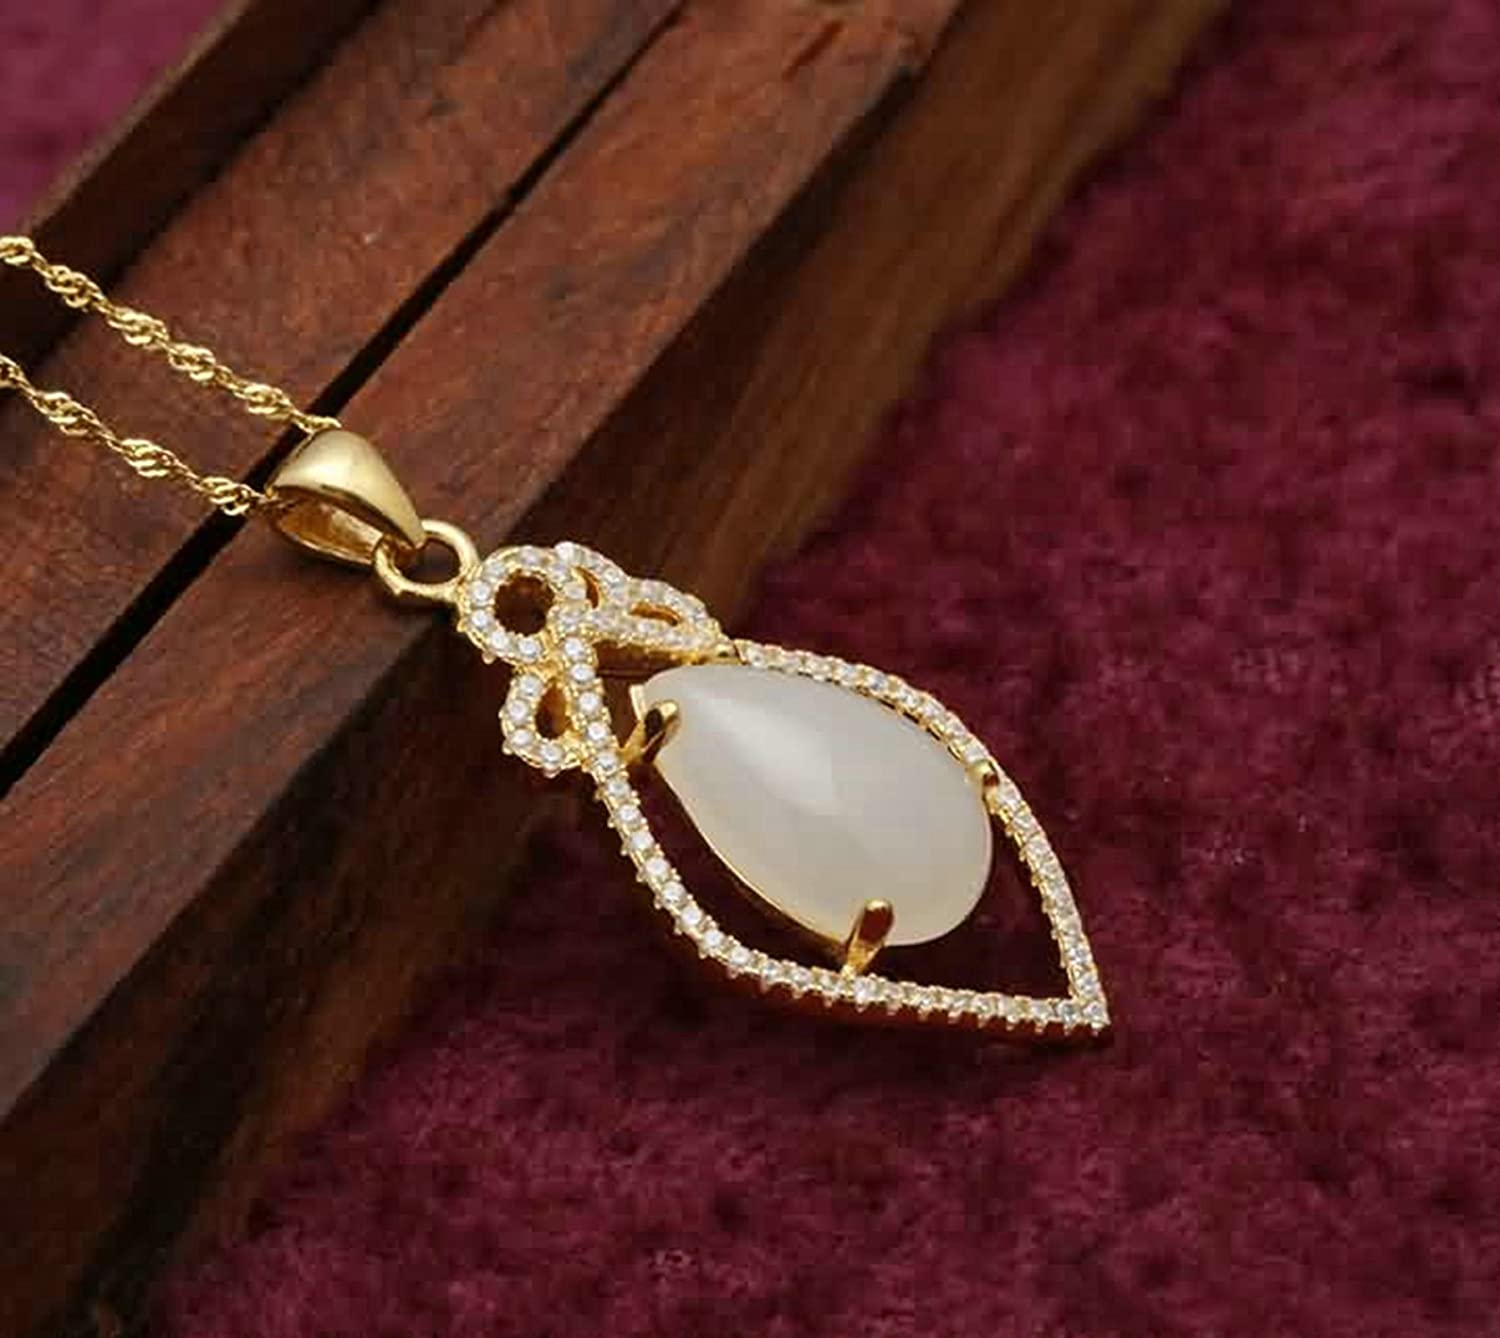 AMDXD Jewelry Women Silver Plated Pendant Necklaces CZ Drop Gold 3.1X1.7CM